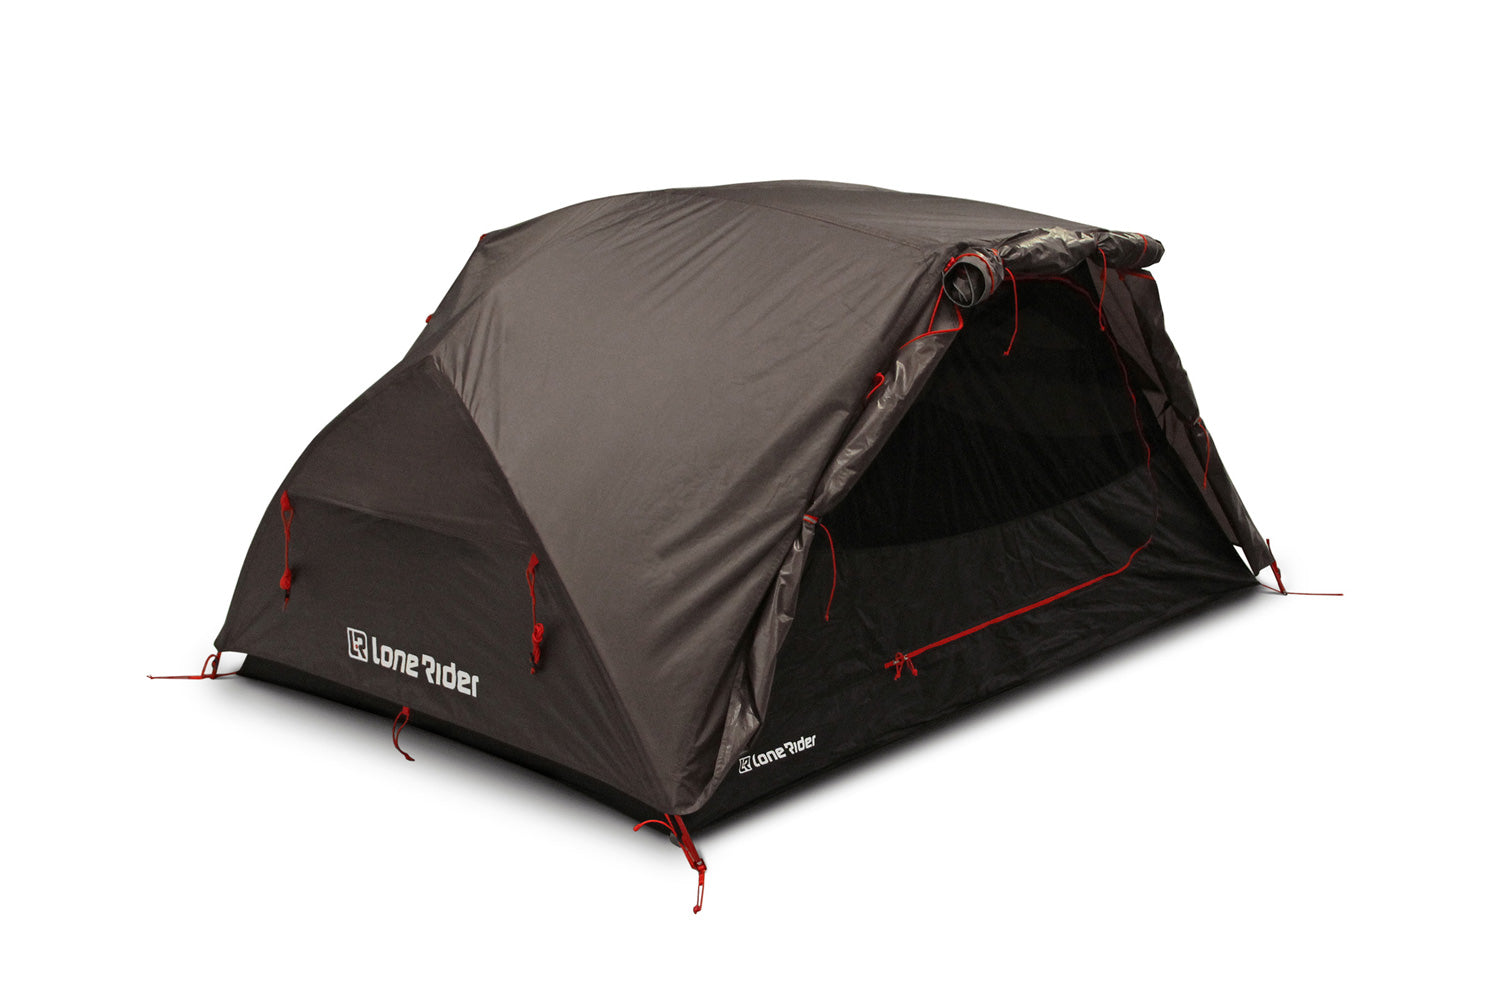 ... Motorcycle tent ADVtent Lone Rider 2 person tent full door open ...  sc 1 st  Lone Rider & ADV Tent - Adventure Motorcycle Tent | Lone Rider